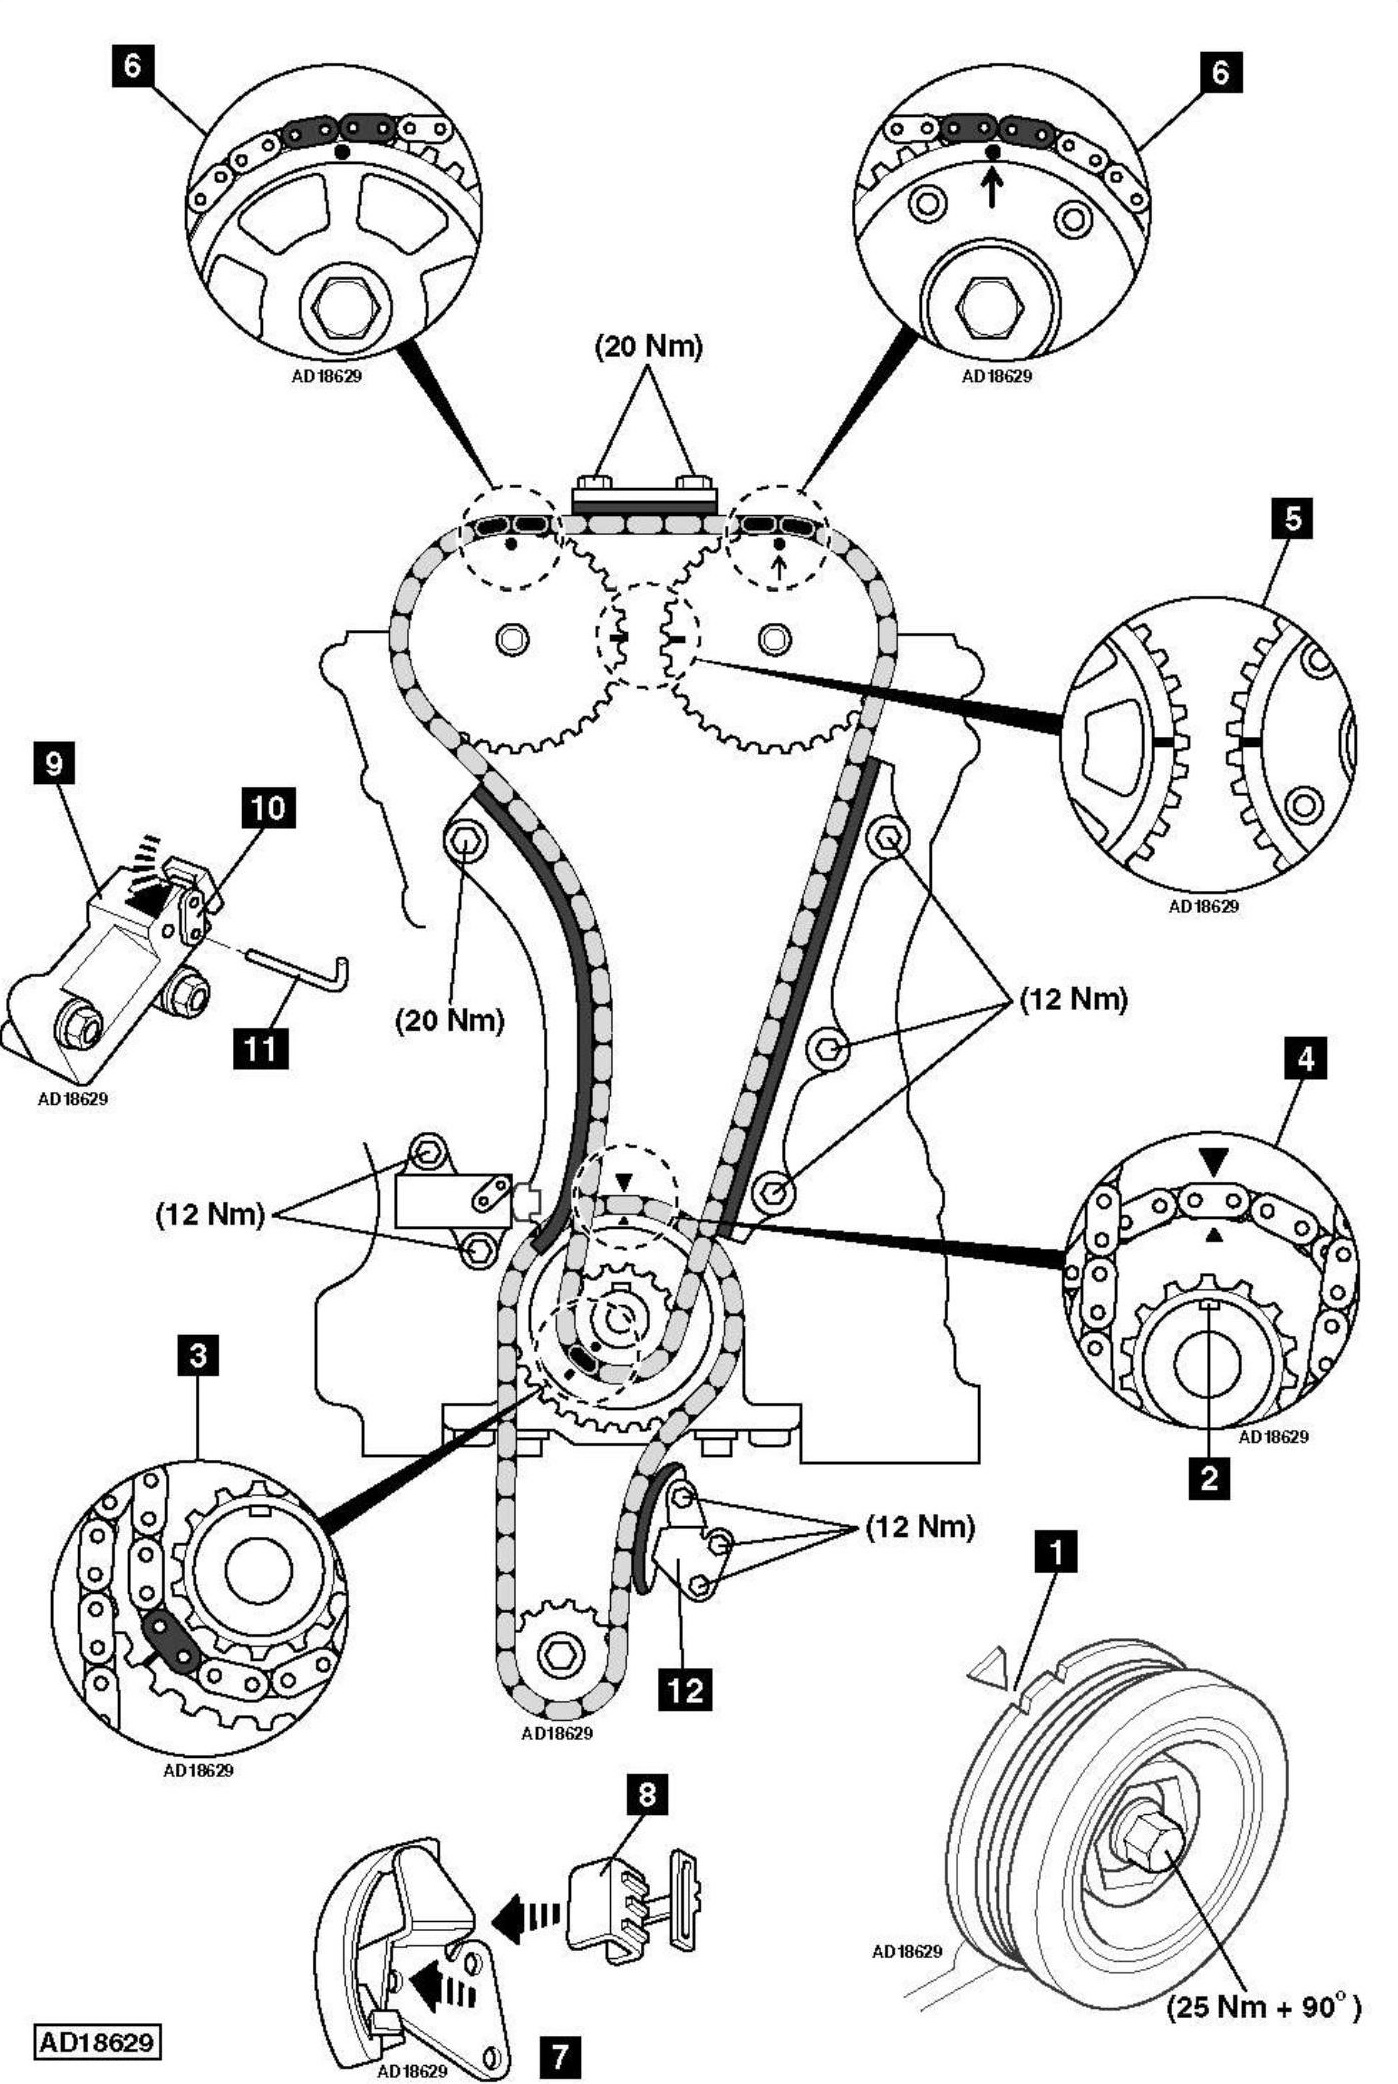 Bolens Tiller Parts Ereplacementparts together with 1236578 Under Hood Fuse Panel Diagram likewise RepairGuideContent moreover 2012 Chevrolet Malibu Engine Diagram in addition Arctic Cat Wildcat Battery Location. on 2012 camaro battery location